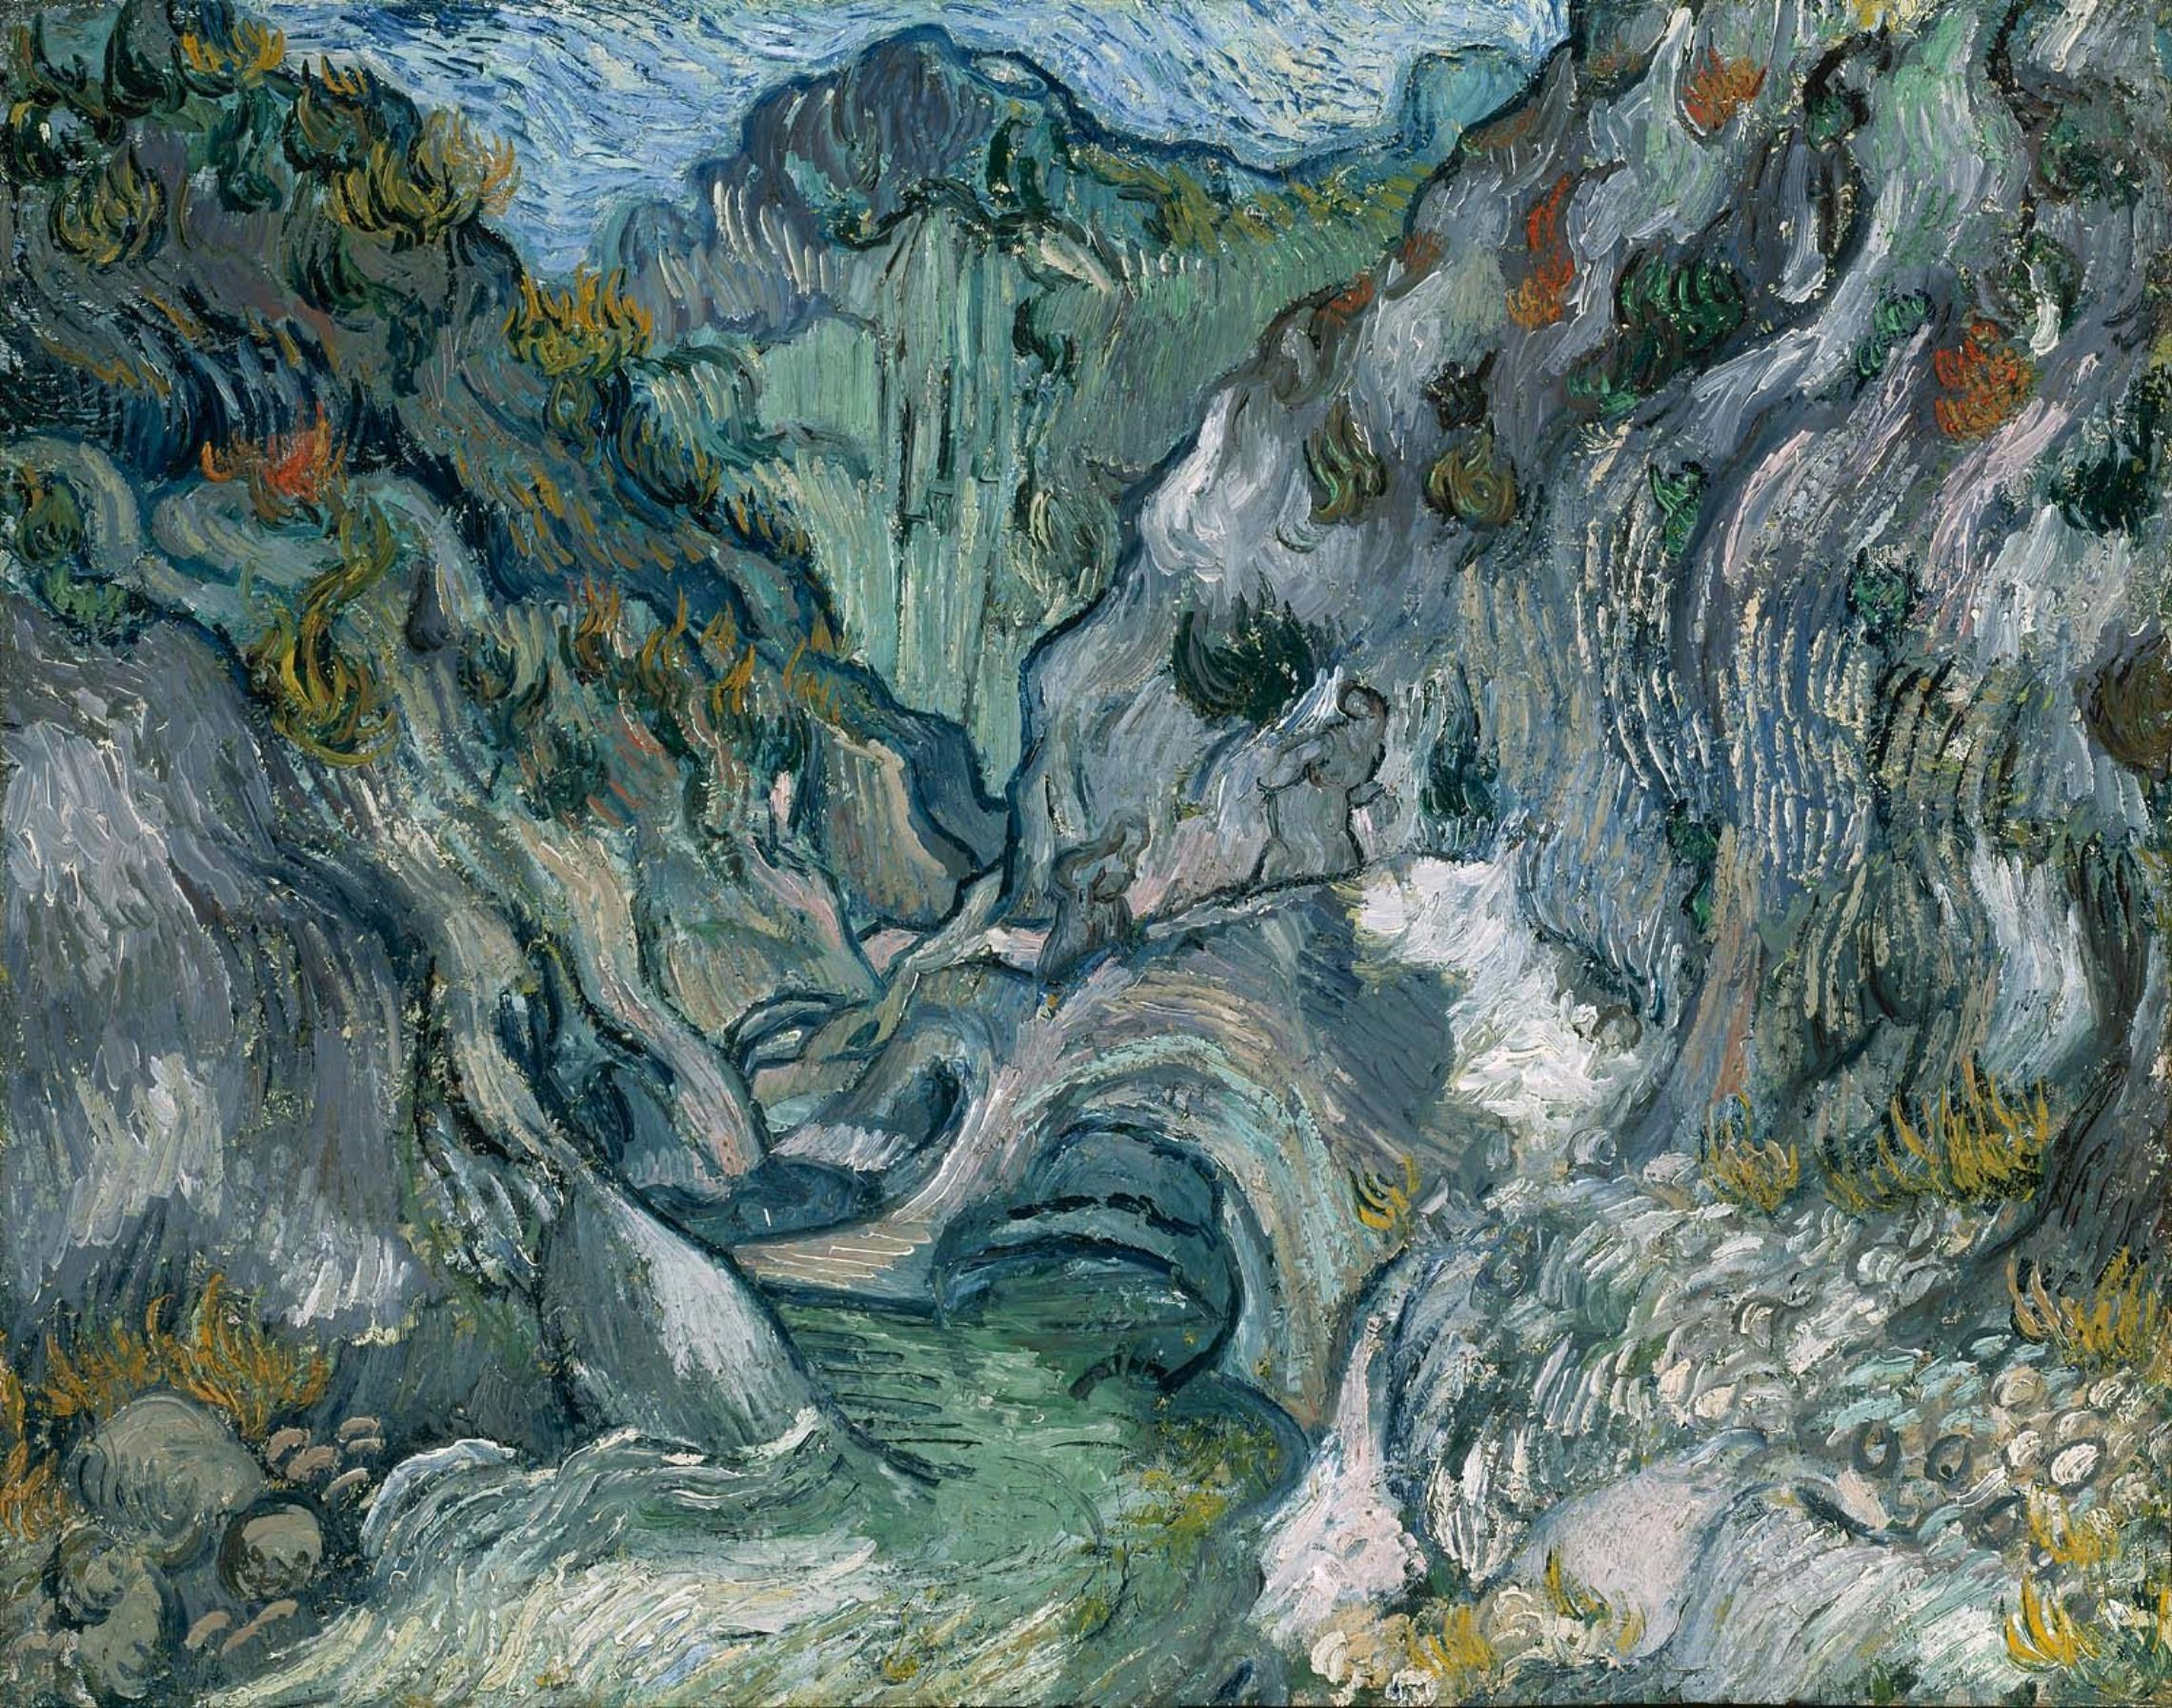 Vincent van Gogh, The Ravine